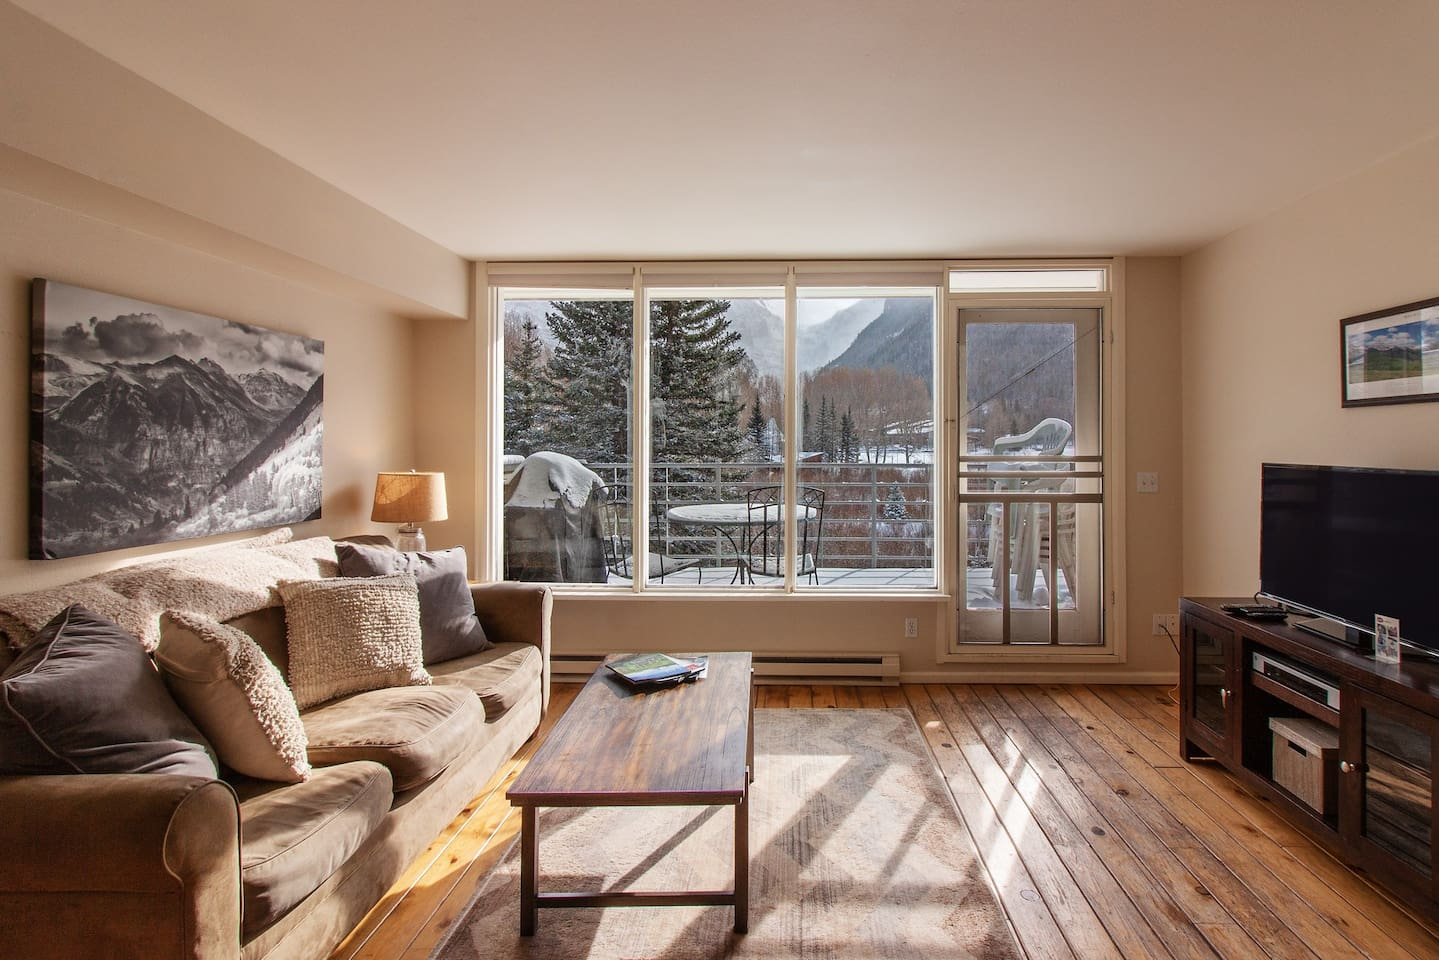 Contemporary alpine getaway with shared hot tub - walk/shuttle to gondola